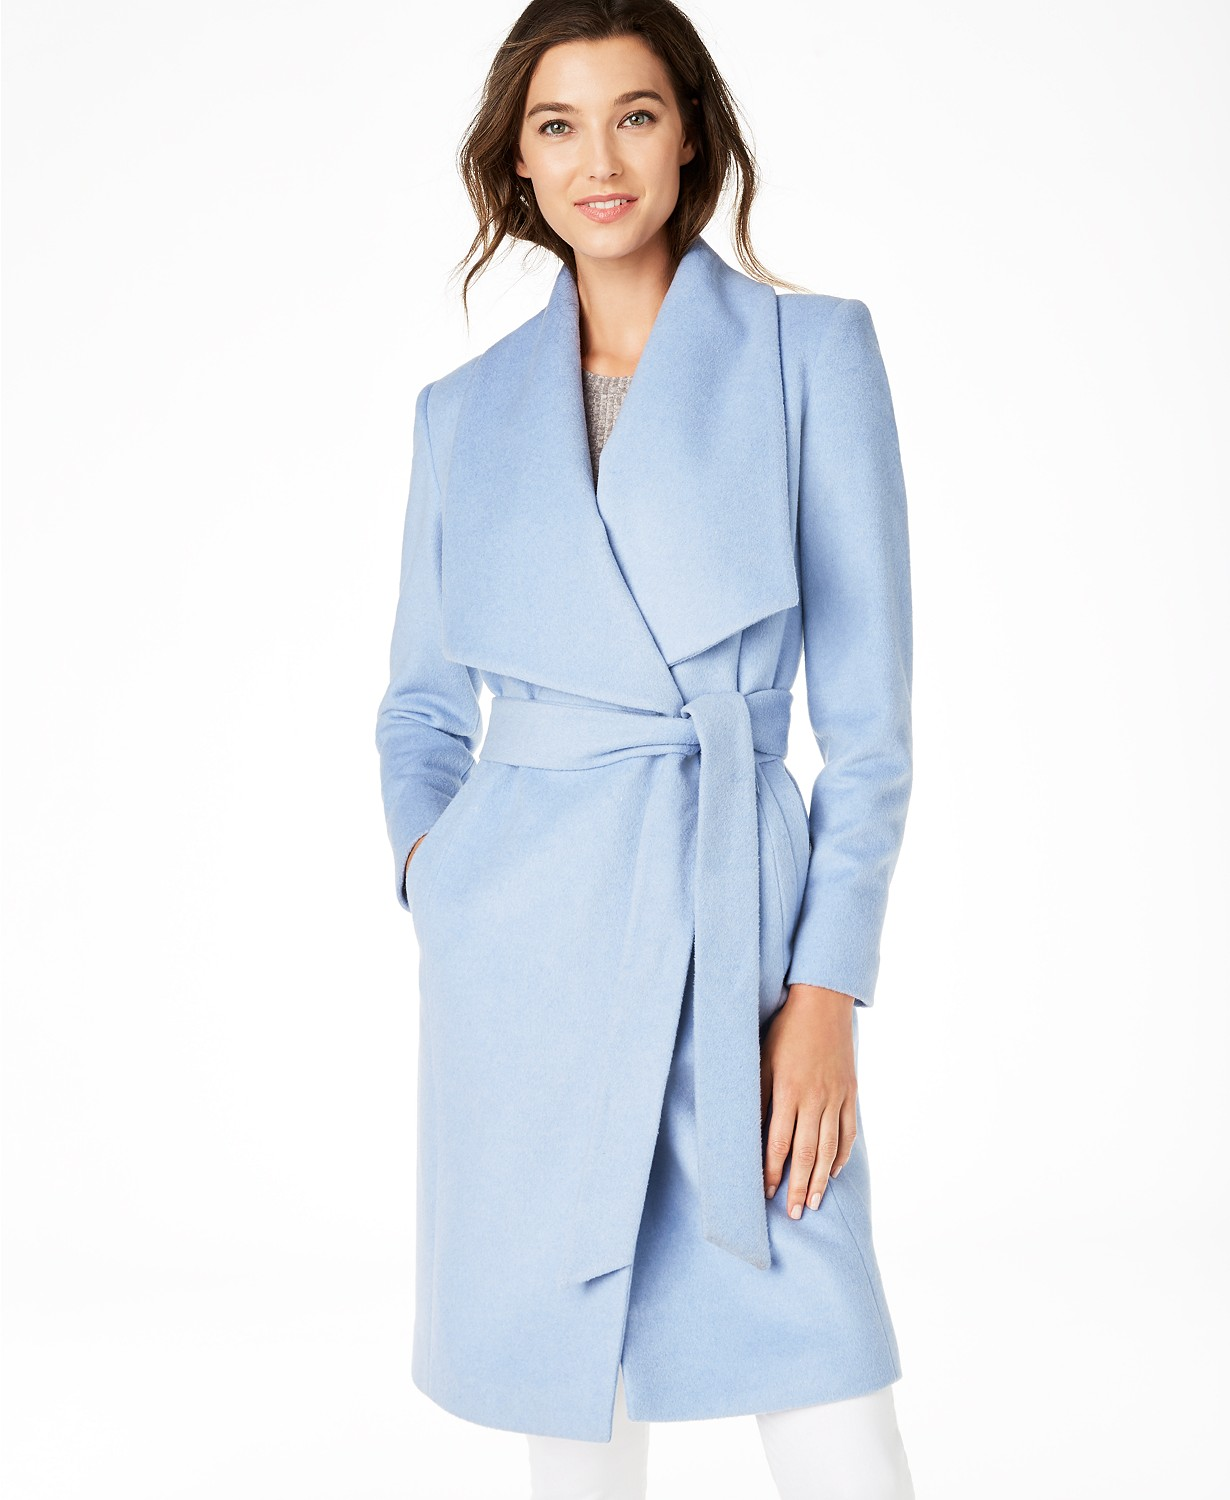 Women Flash Sale: 50-70% Off Coats